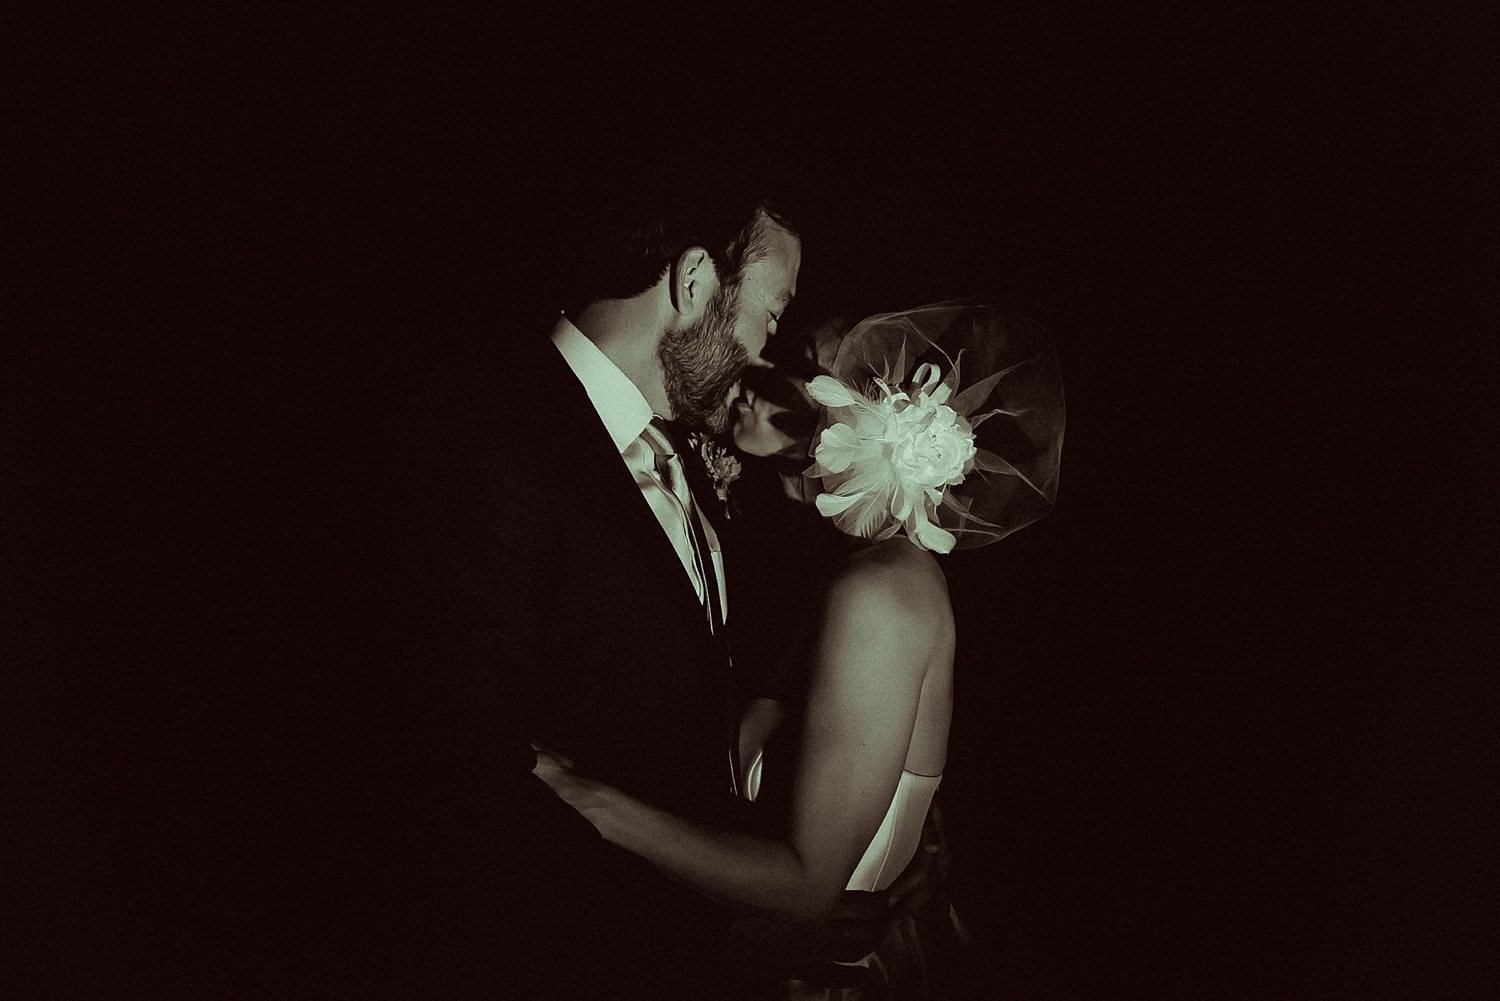 Night Wedding Photos | Black and White wedding photos